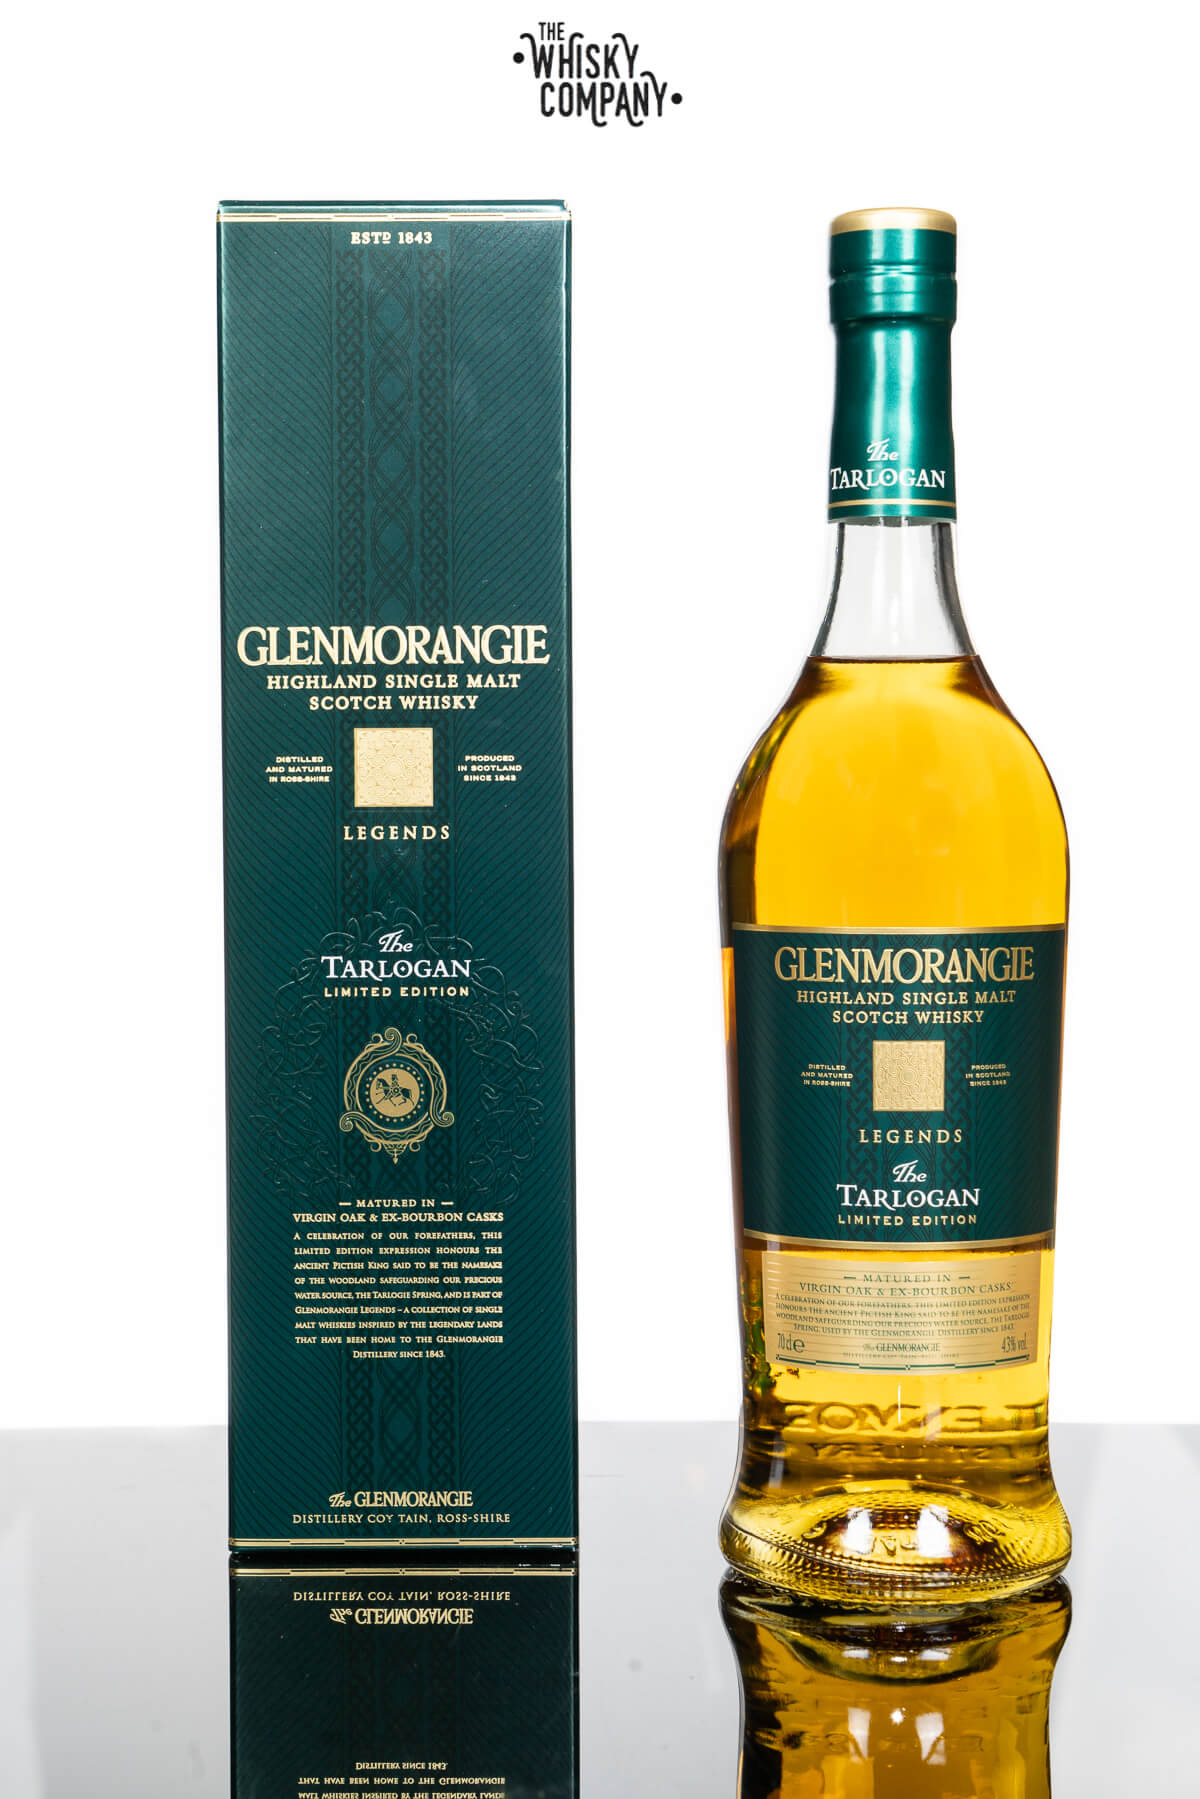 Glenmorangie Legends Tarlogan Highland Single Malt Scotch Whisky (700ml)